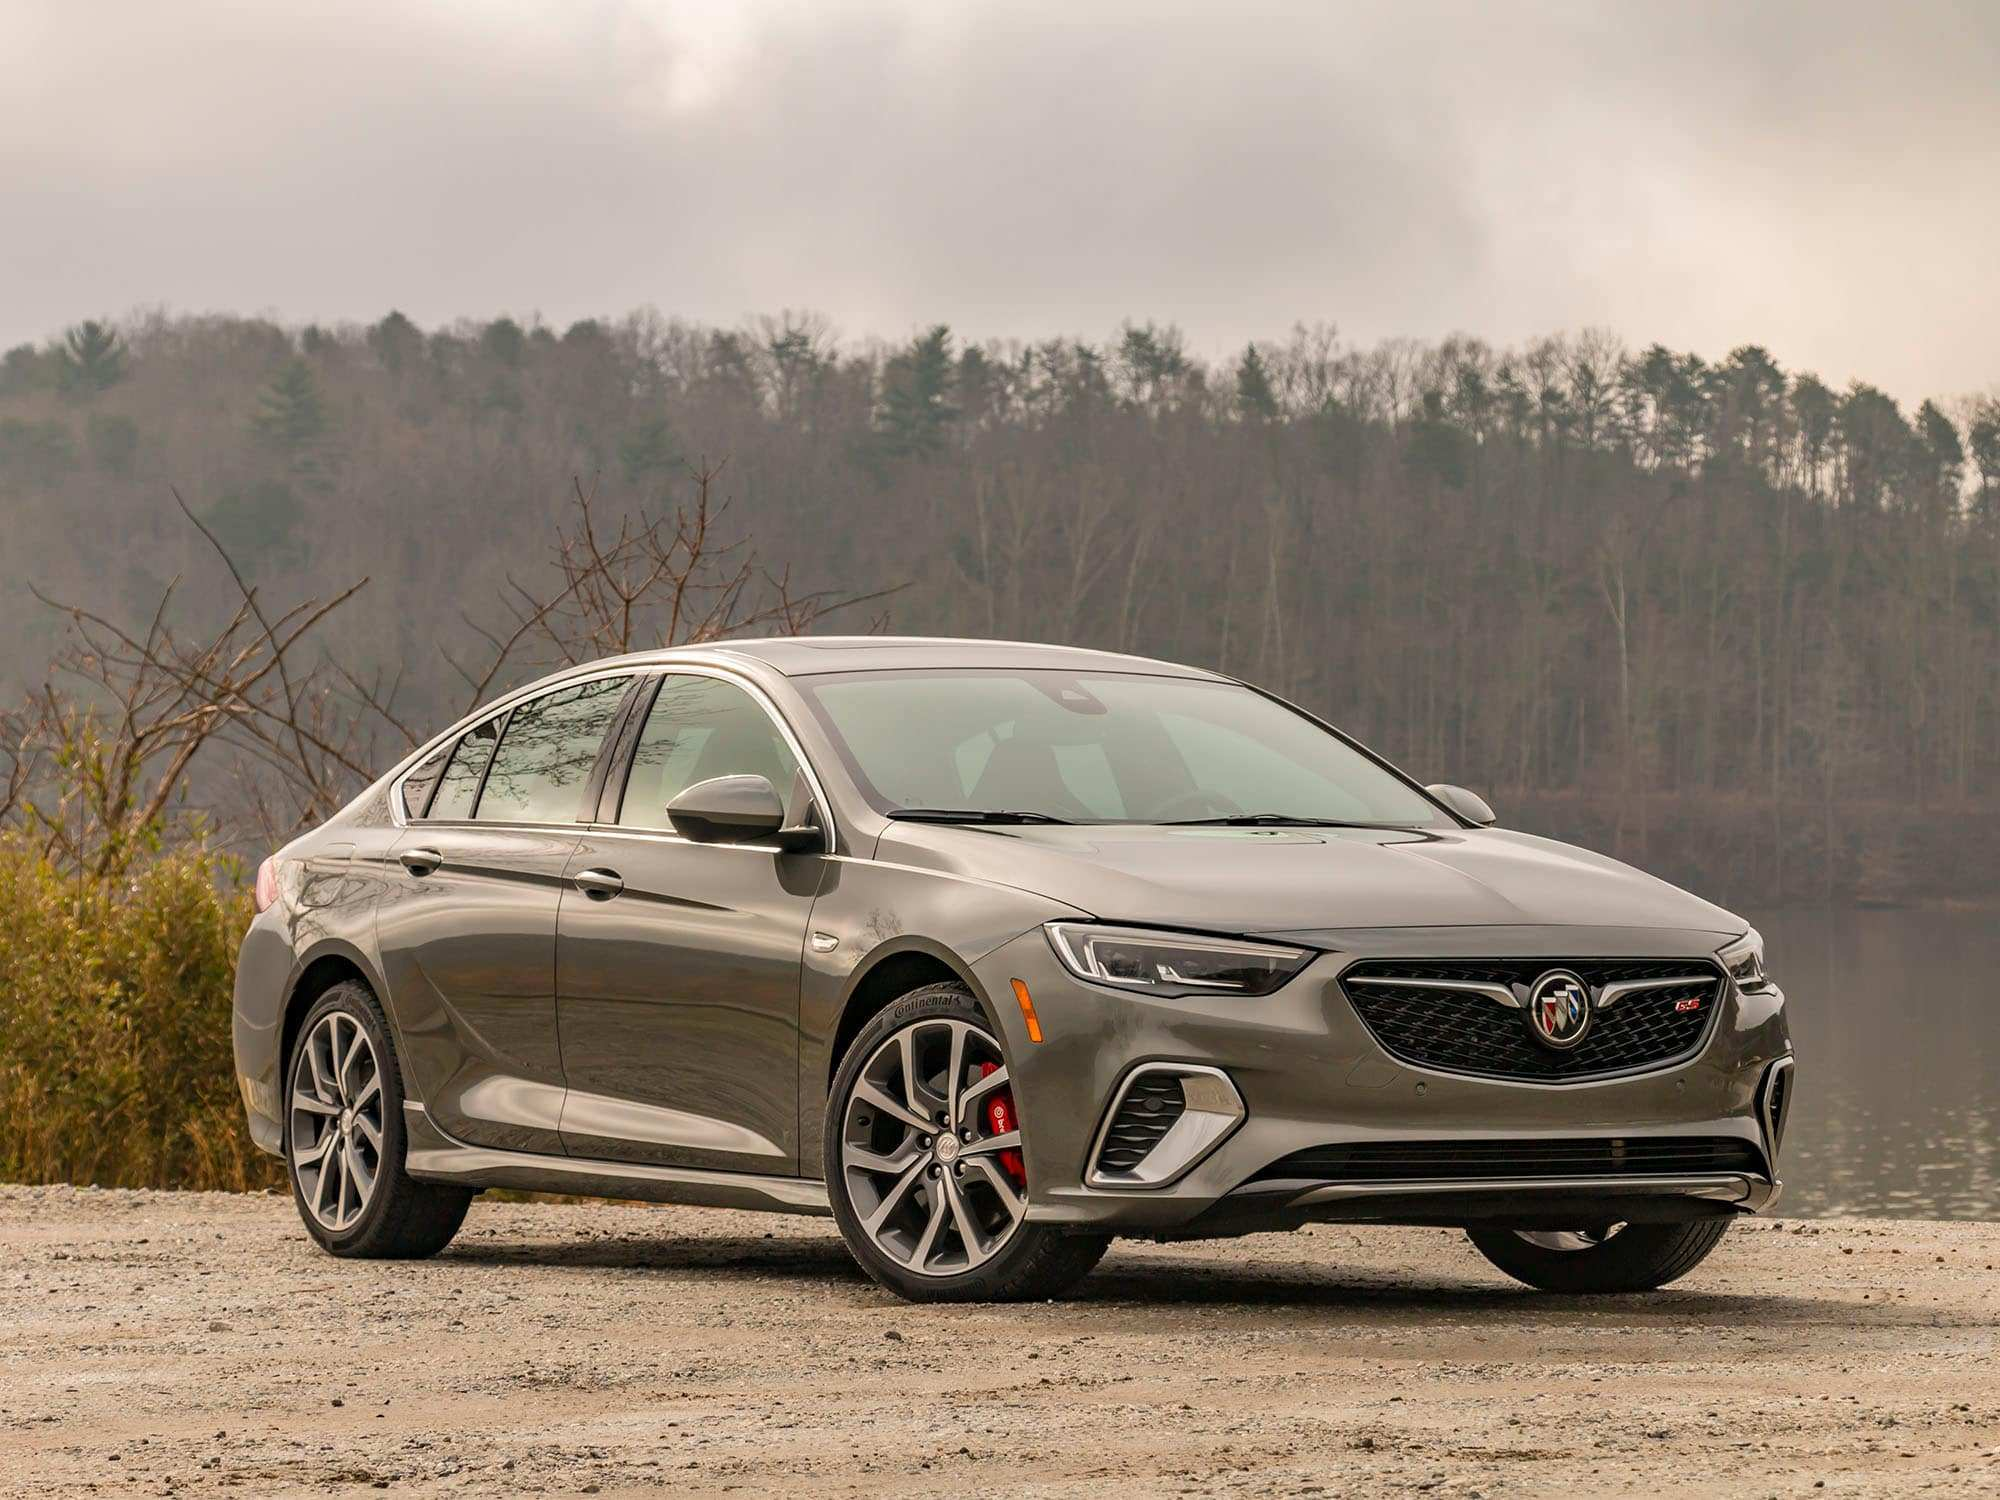 19 Concept of 2019 Buick Regal Sportback Gs Release Date Images with 2019 Buick Regal Sportback Gs Release Date